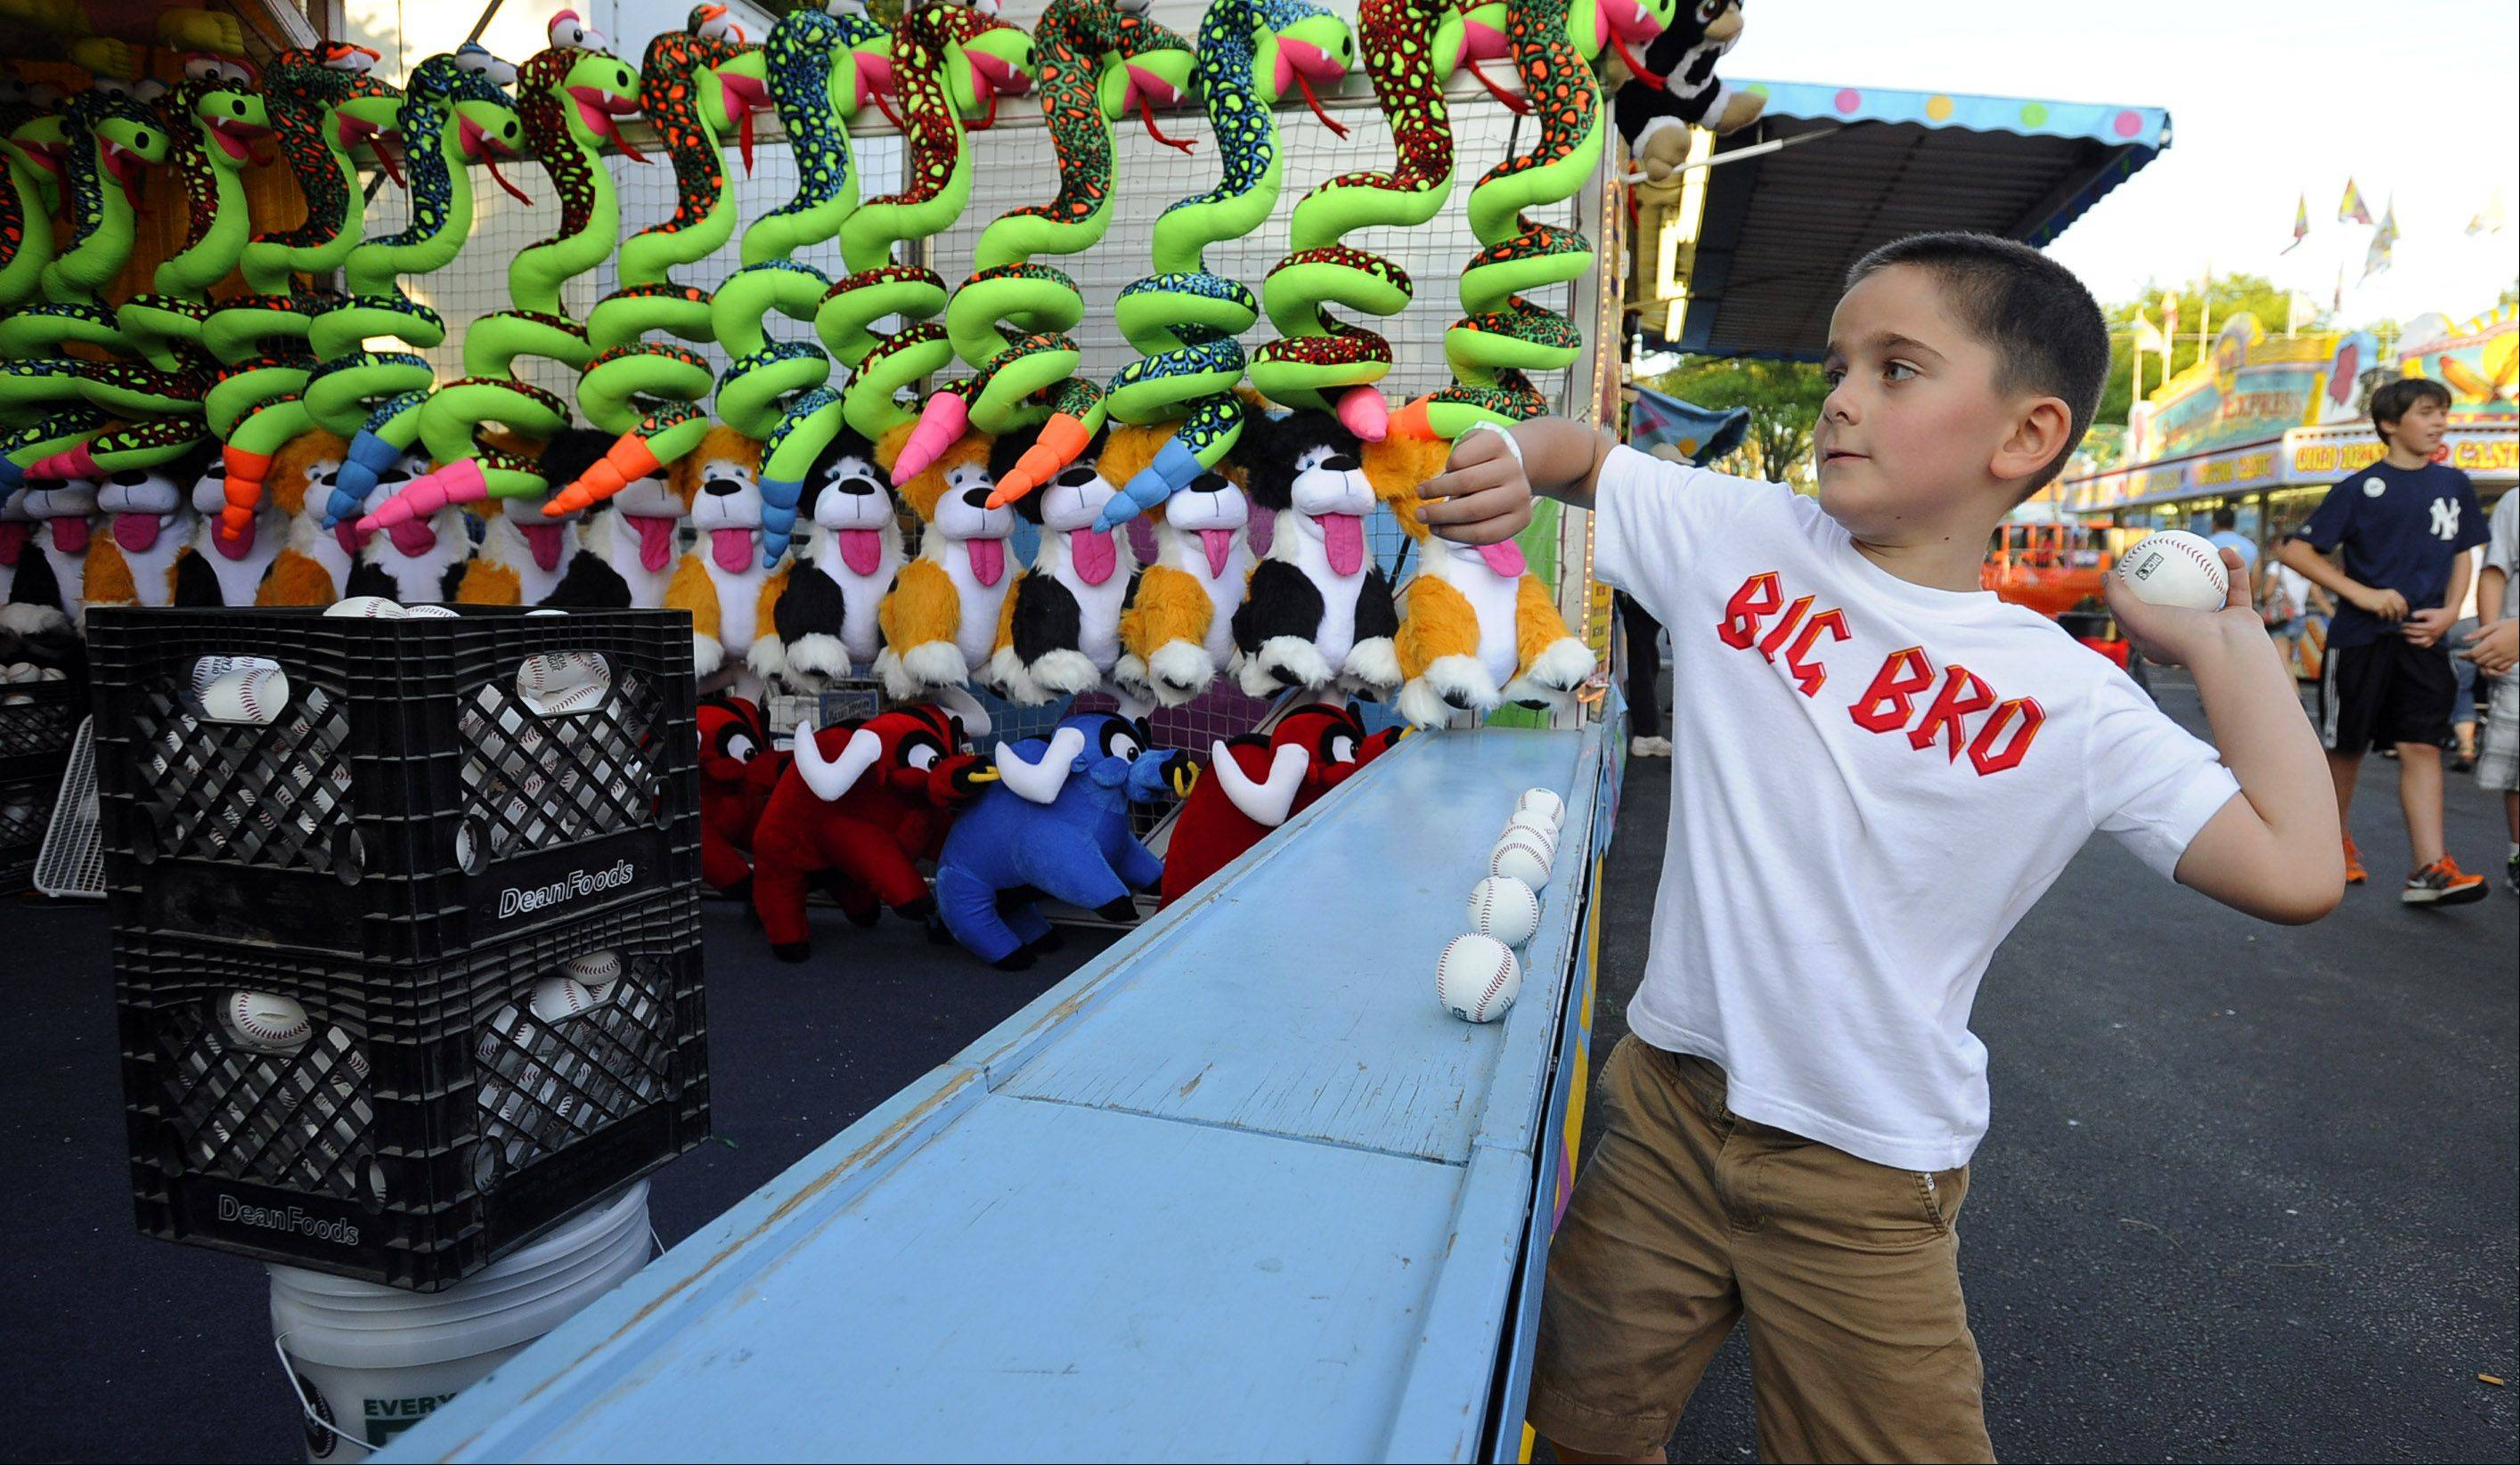 Carson Stech, 6, delivers his fastball at the baseball game at opening night at Buffalo Grove Days on Thursday.